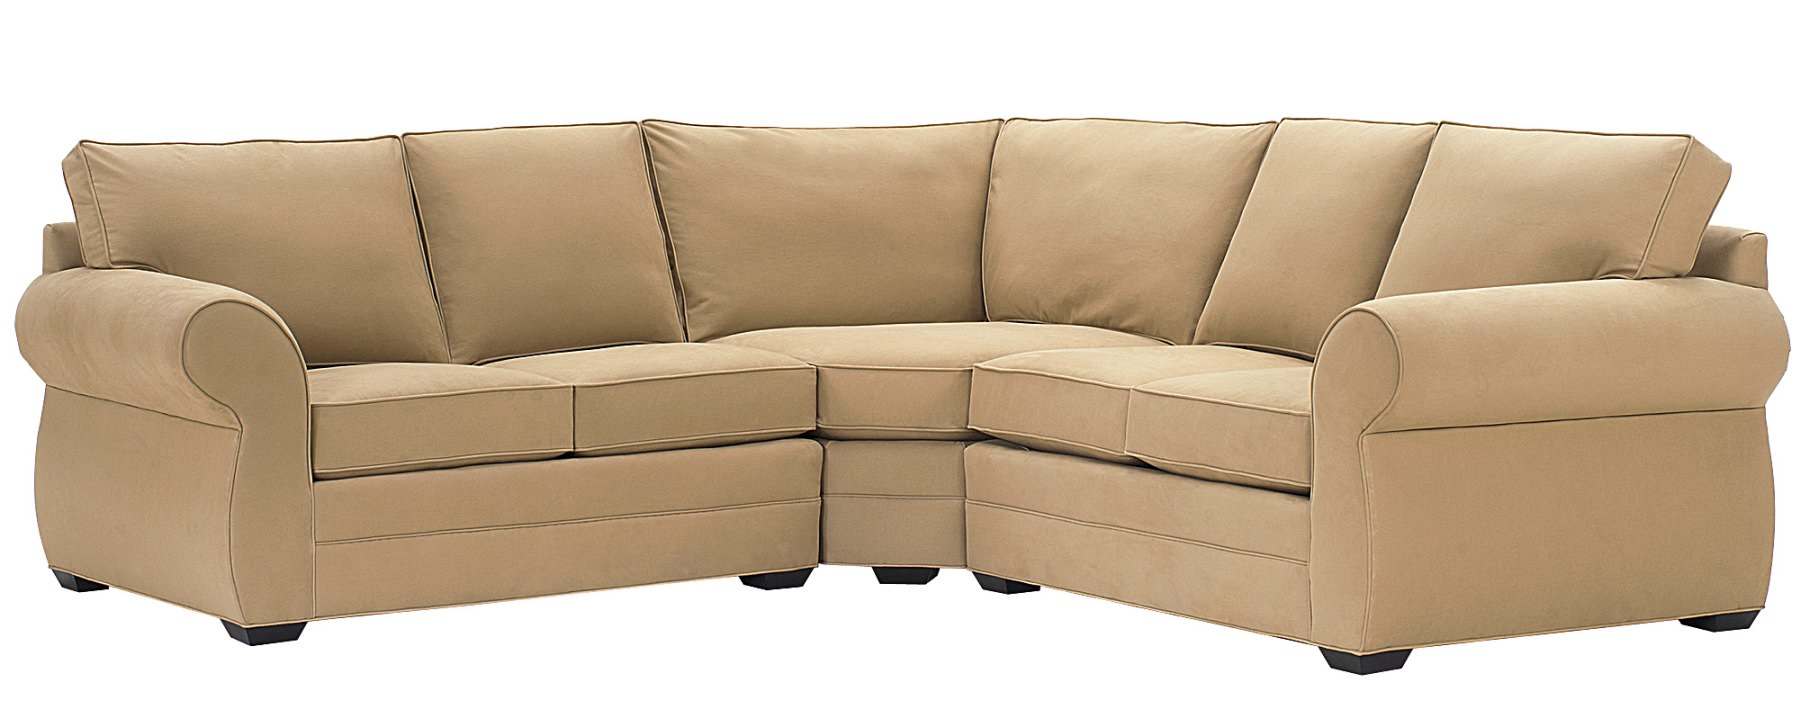 Upholstered modular sectional sofa w wedge club furniture for Build your own modular sectional sofa